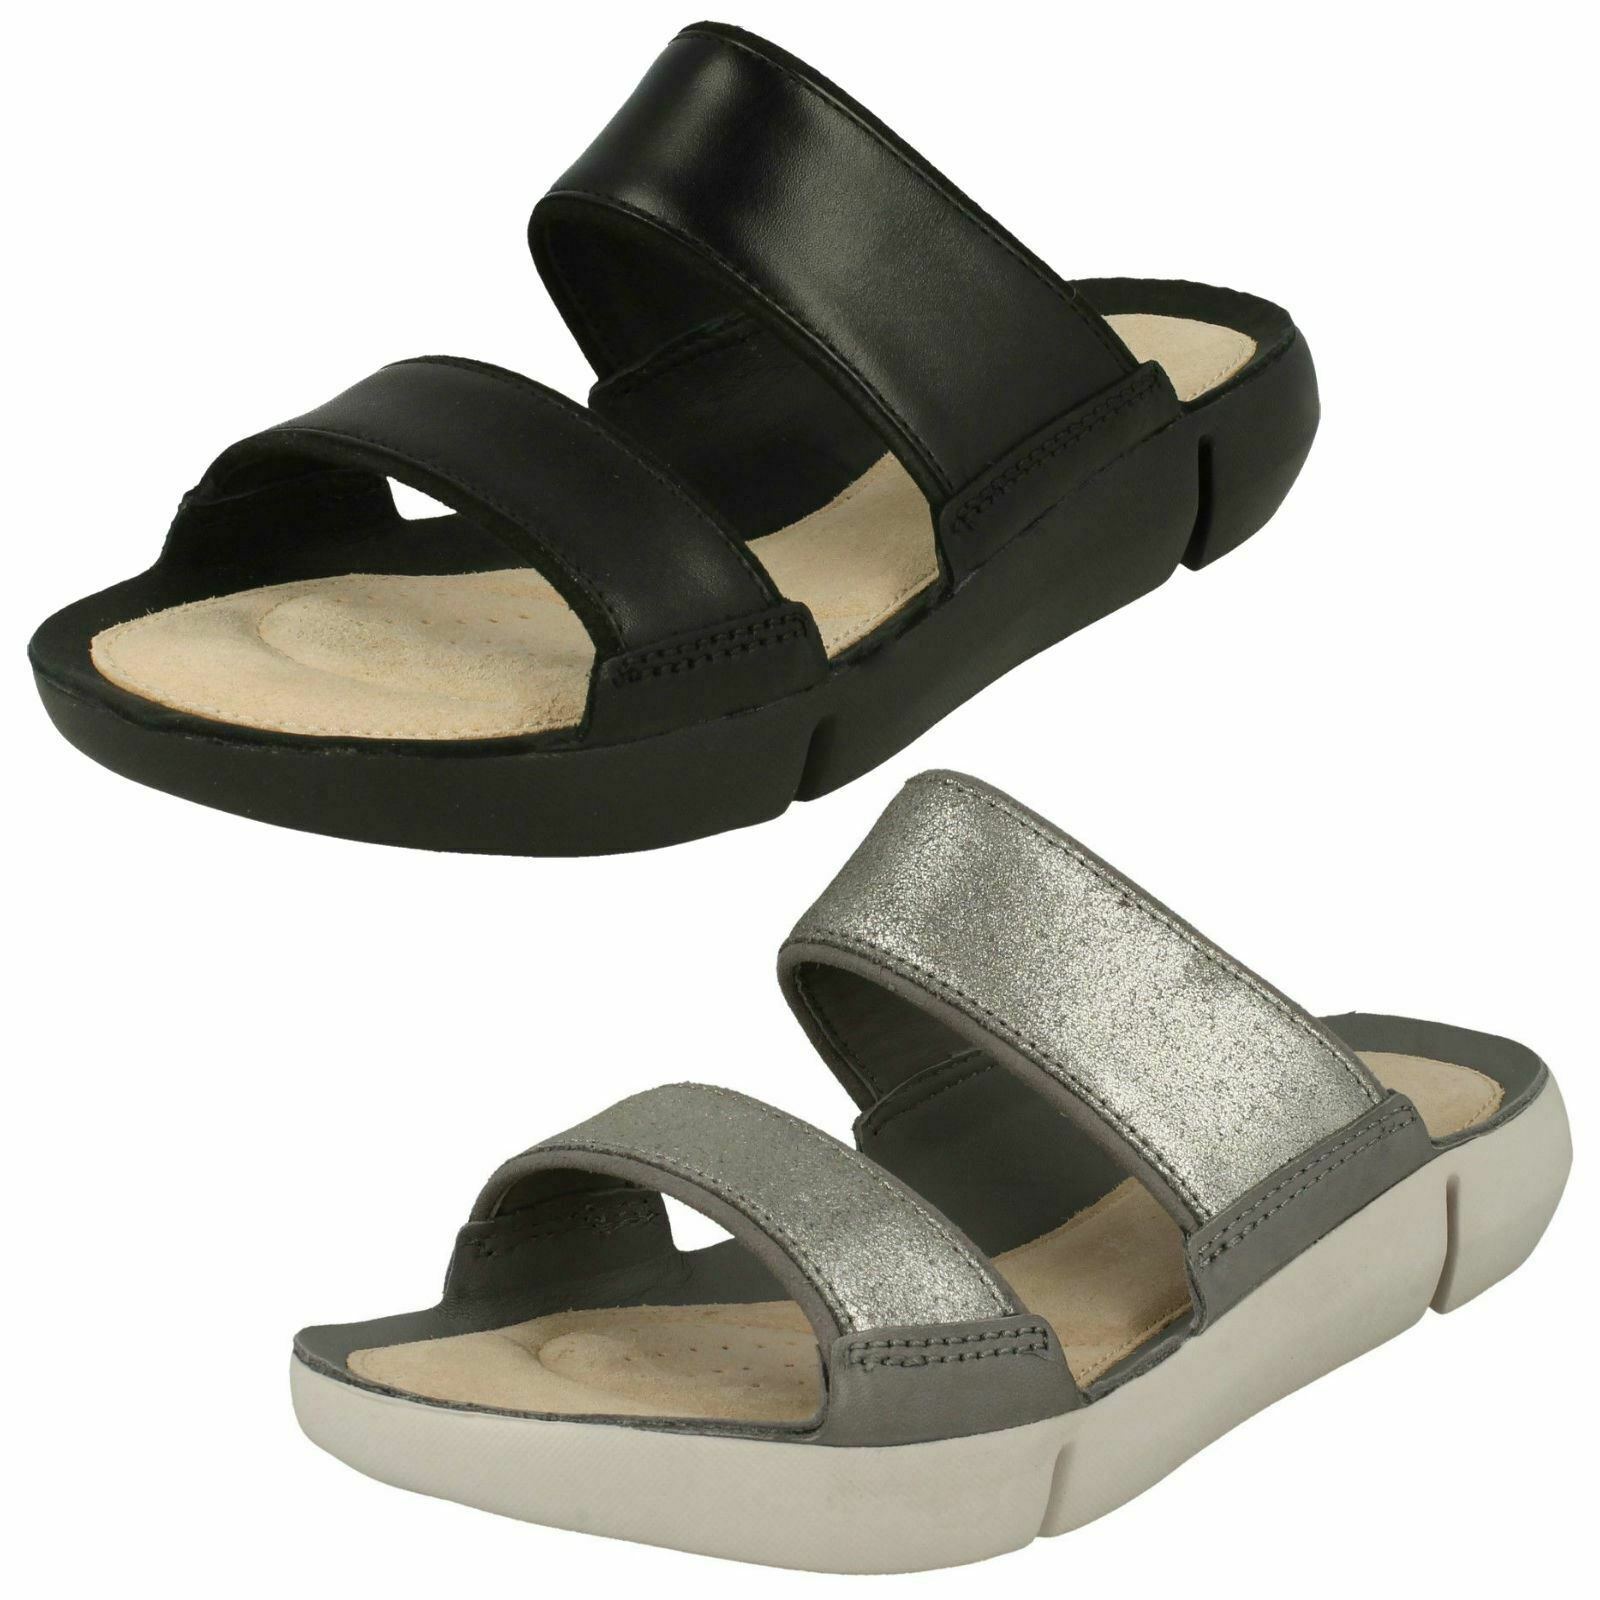 Ladies Clarks Trigenic Mule Sandals Tri Sara